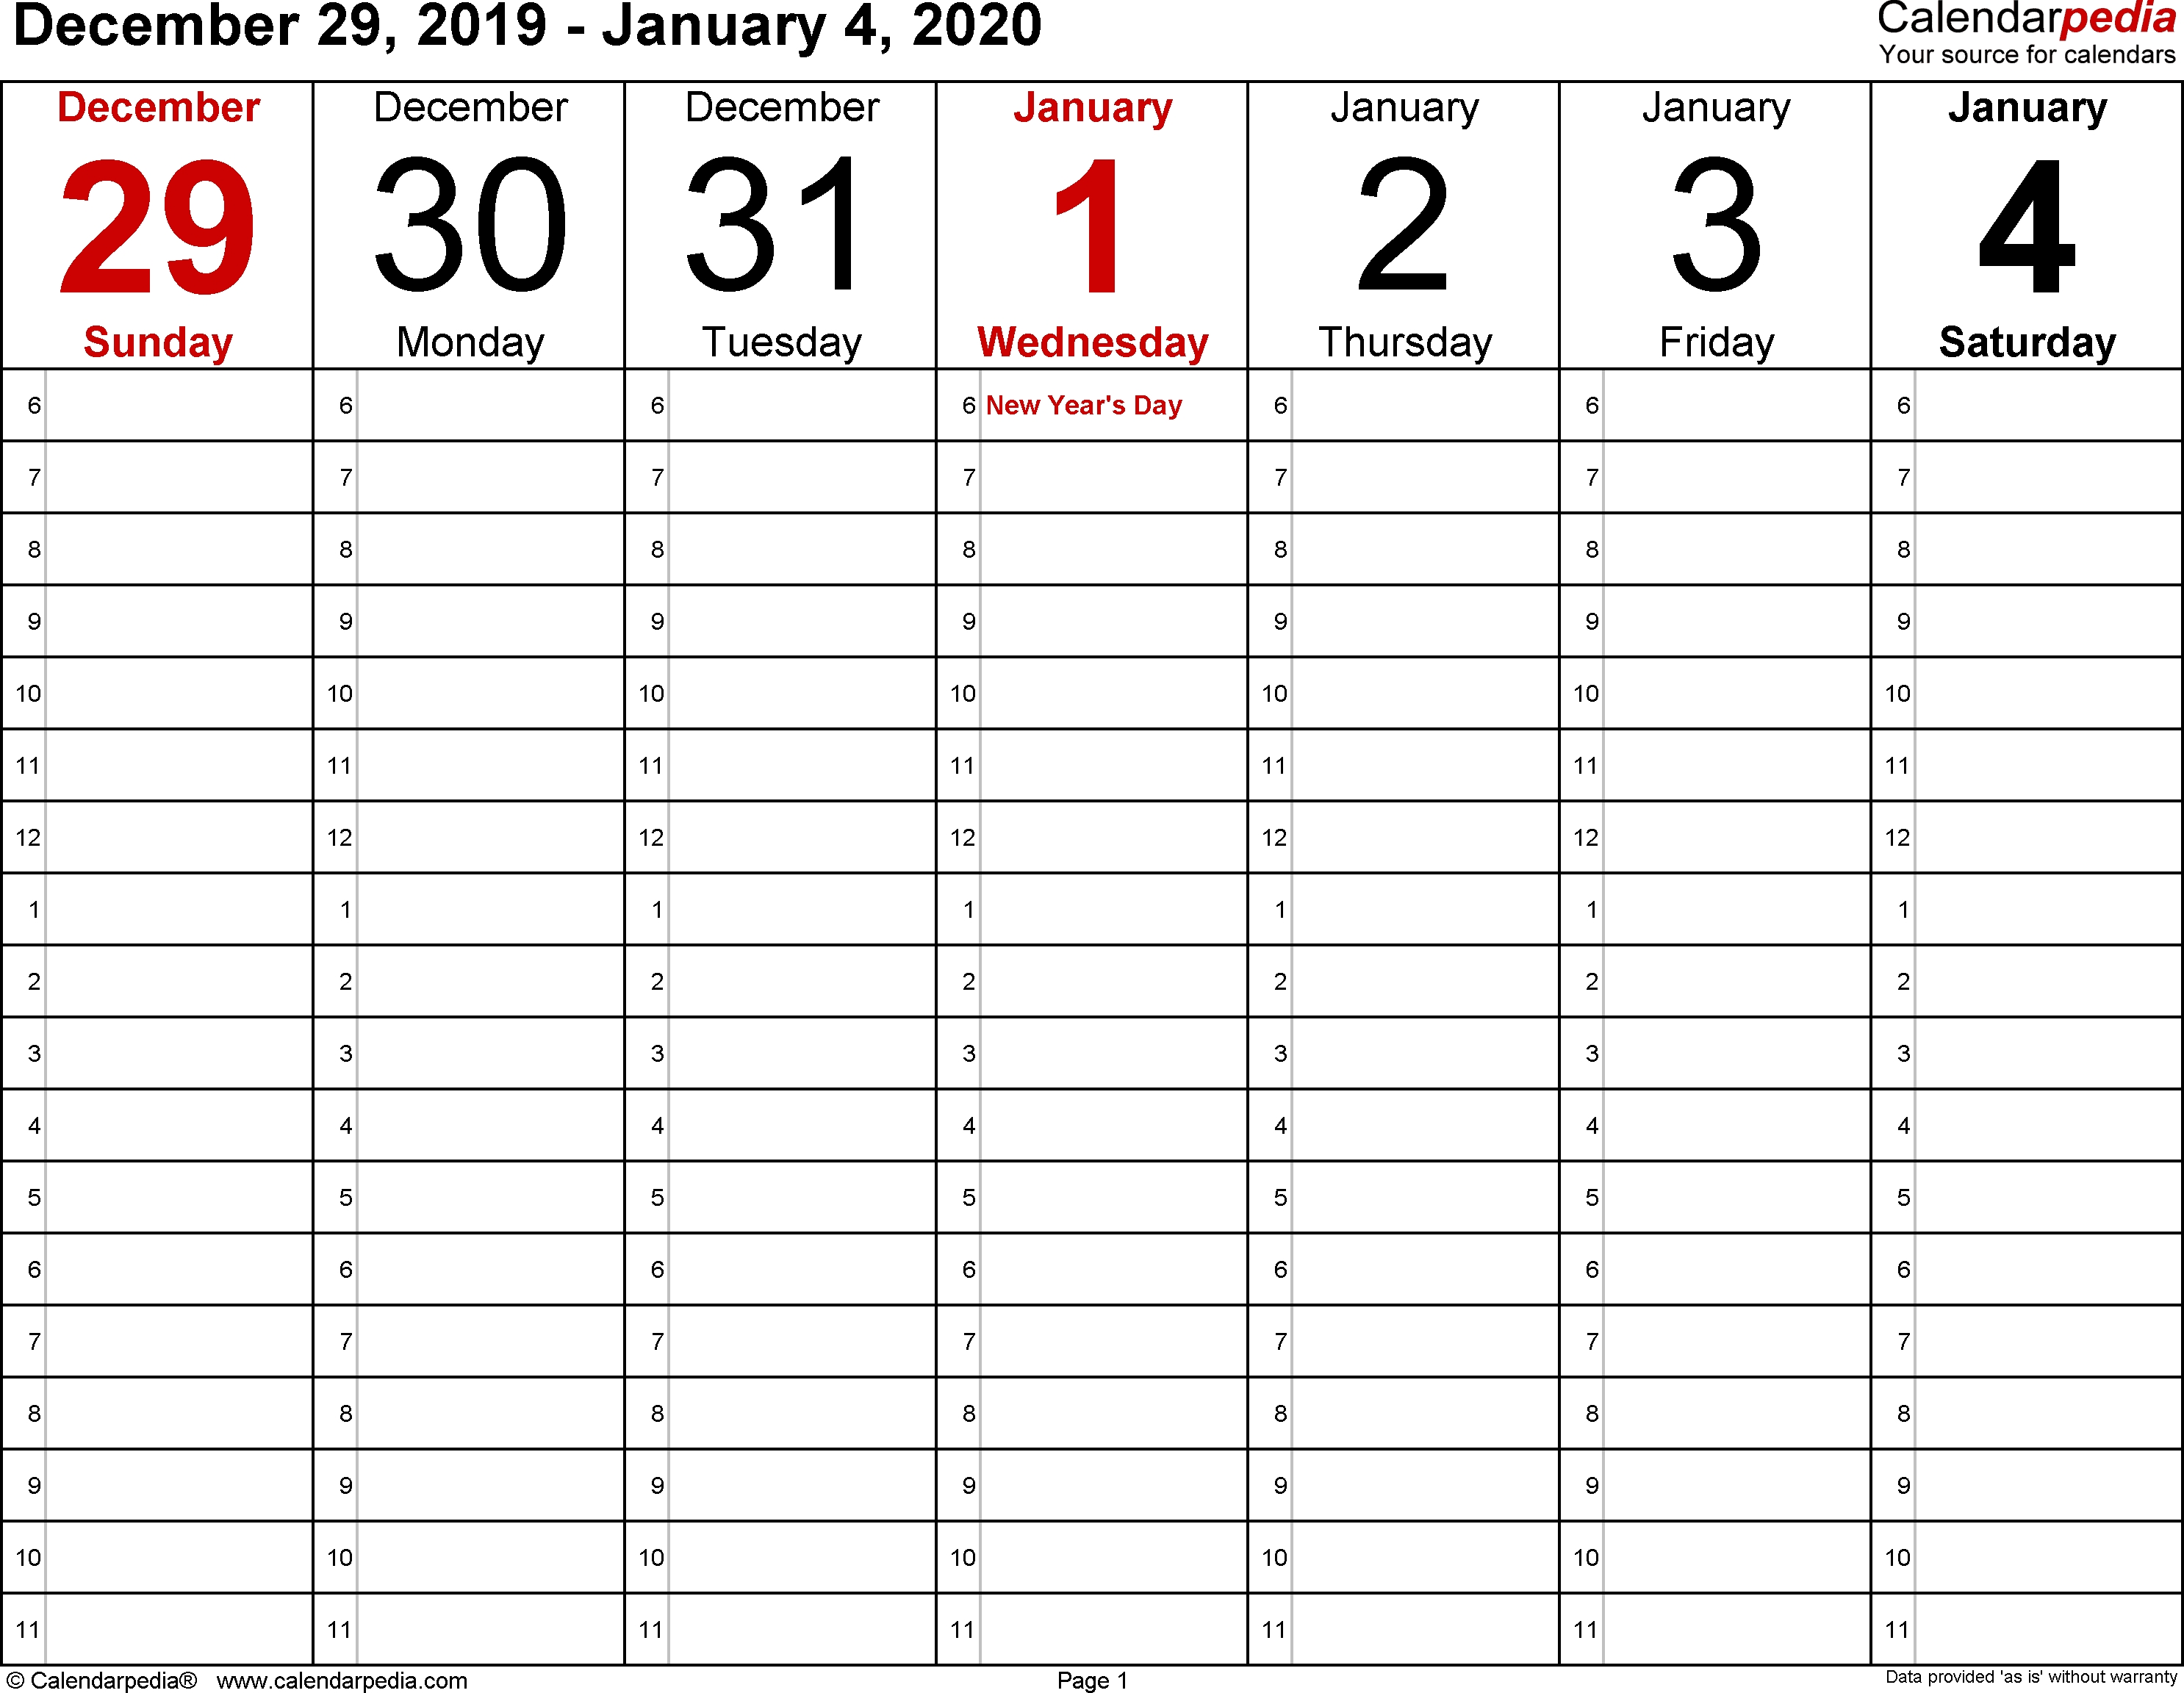 Weekly Calendar 2020 For Word - 12 Free Printable Templates intended for 2020 Week Wise Calendar